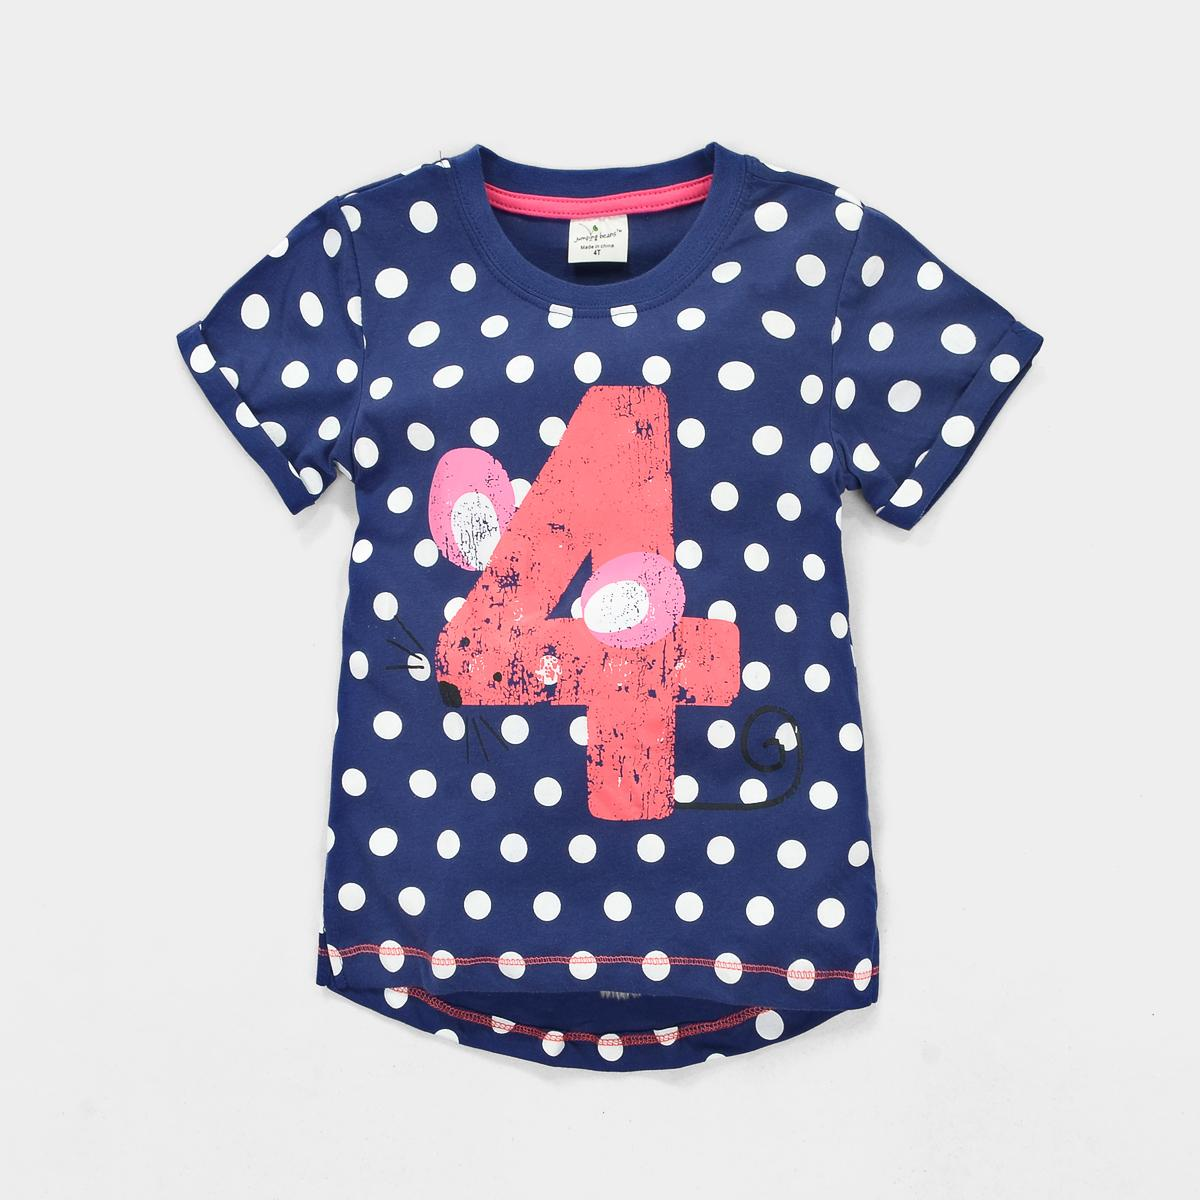 2017 europe and the united states children 39 s summer for Wholesale children s t shirts